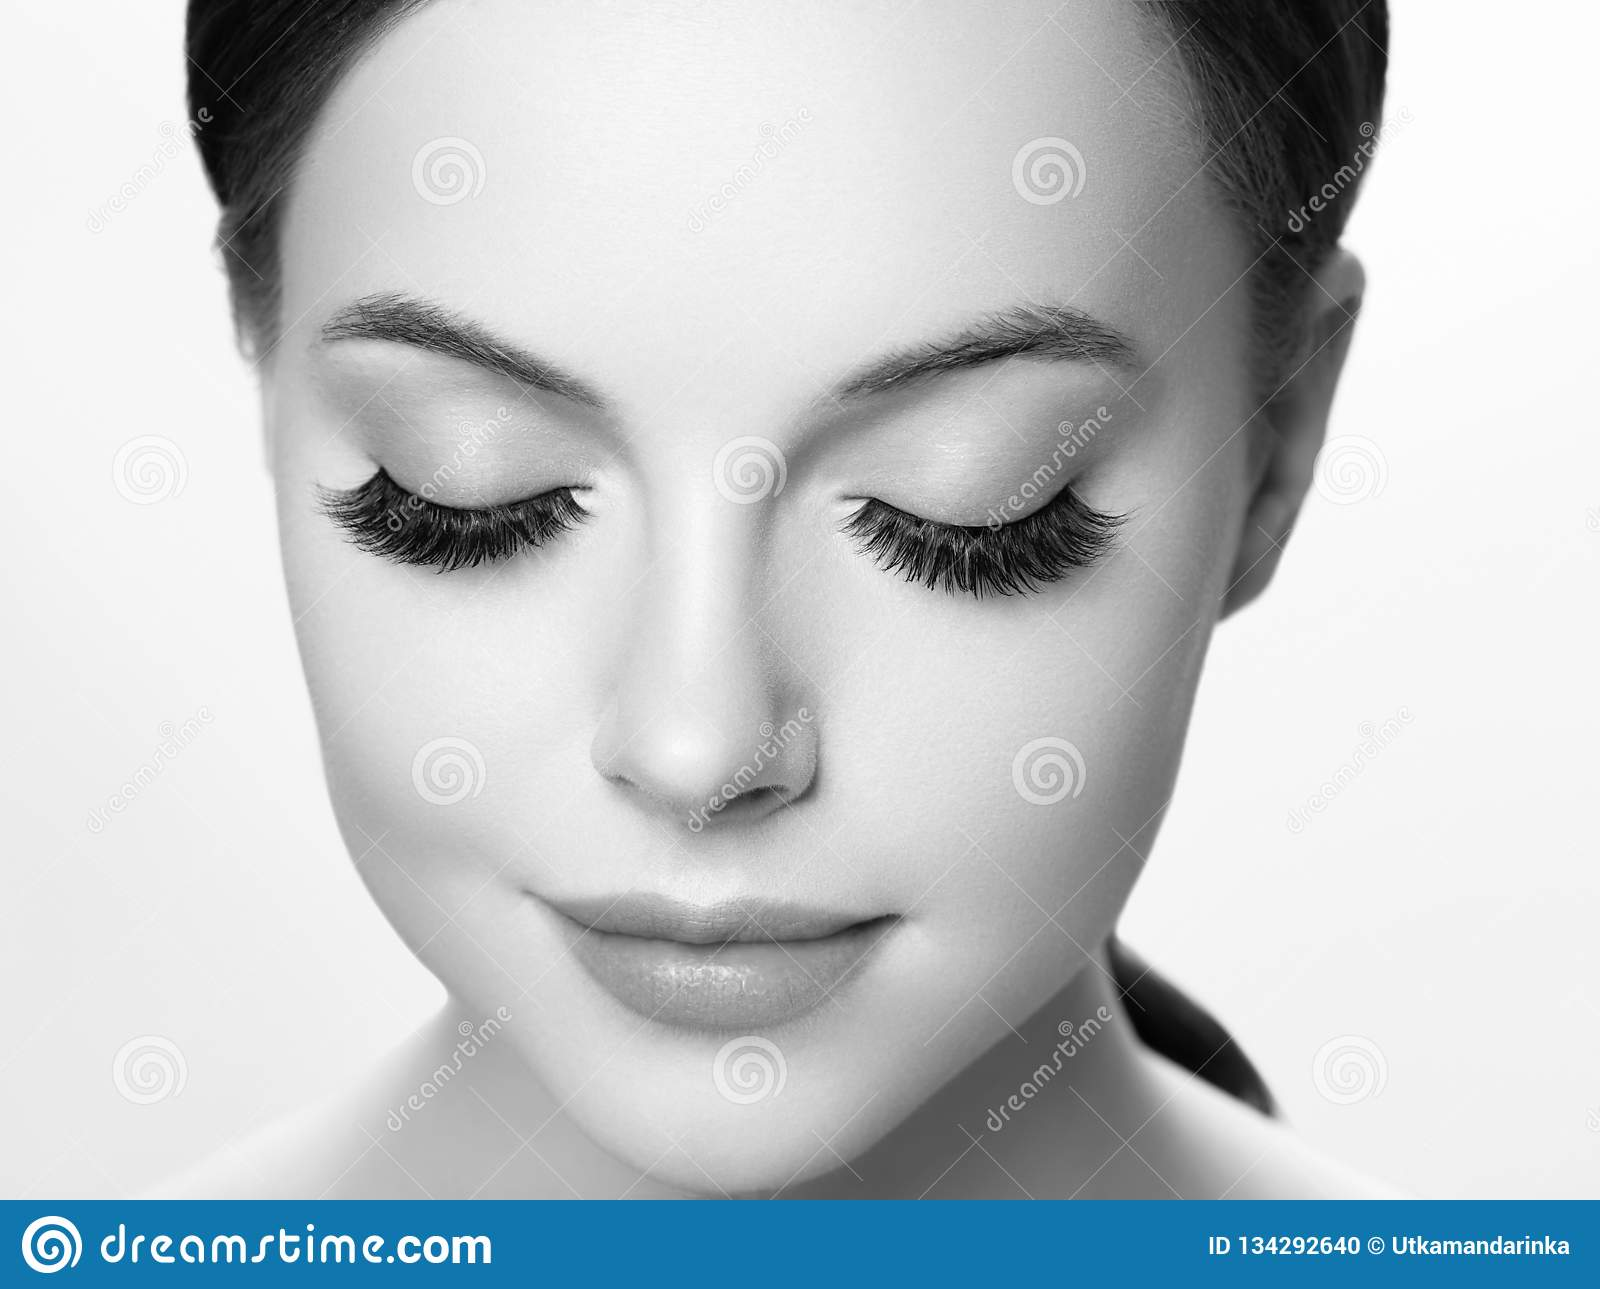 a854c5fe878 Royalty-Free Stock Photo. Eye lashes, lash extension woman lashes close up  macro monochrome